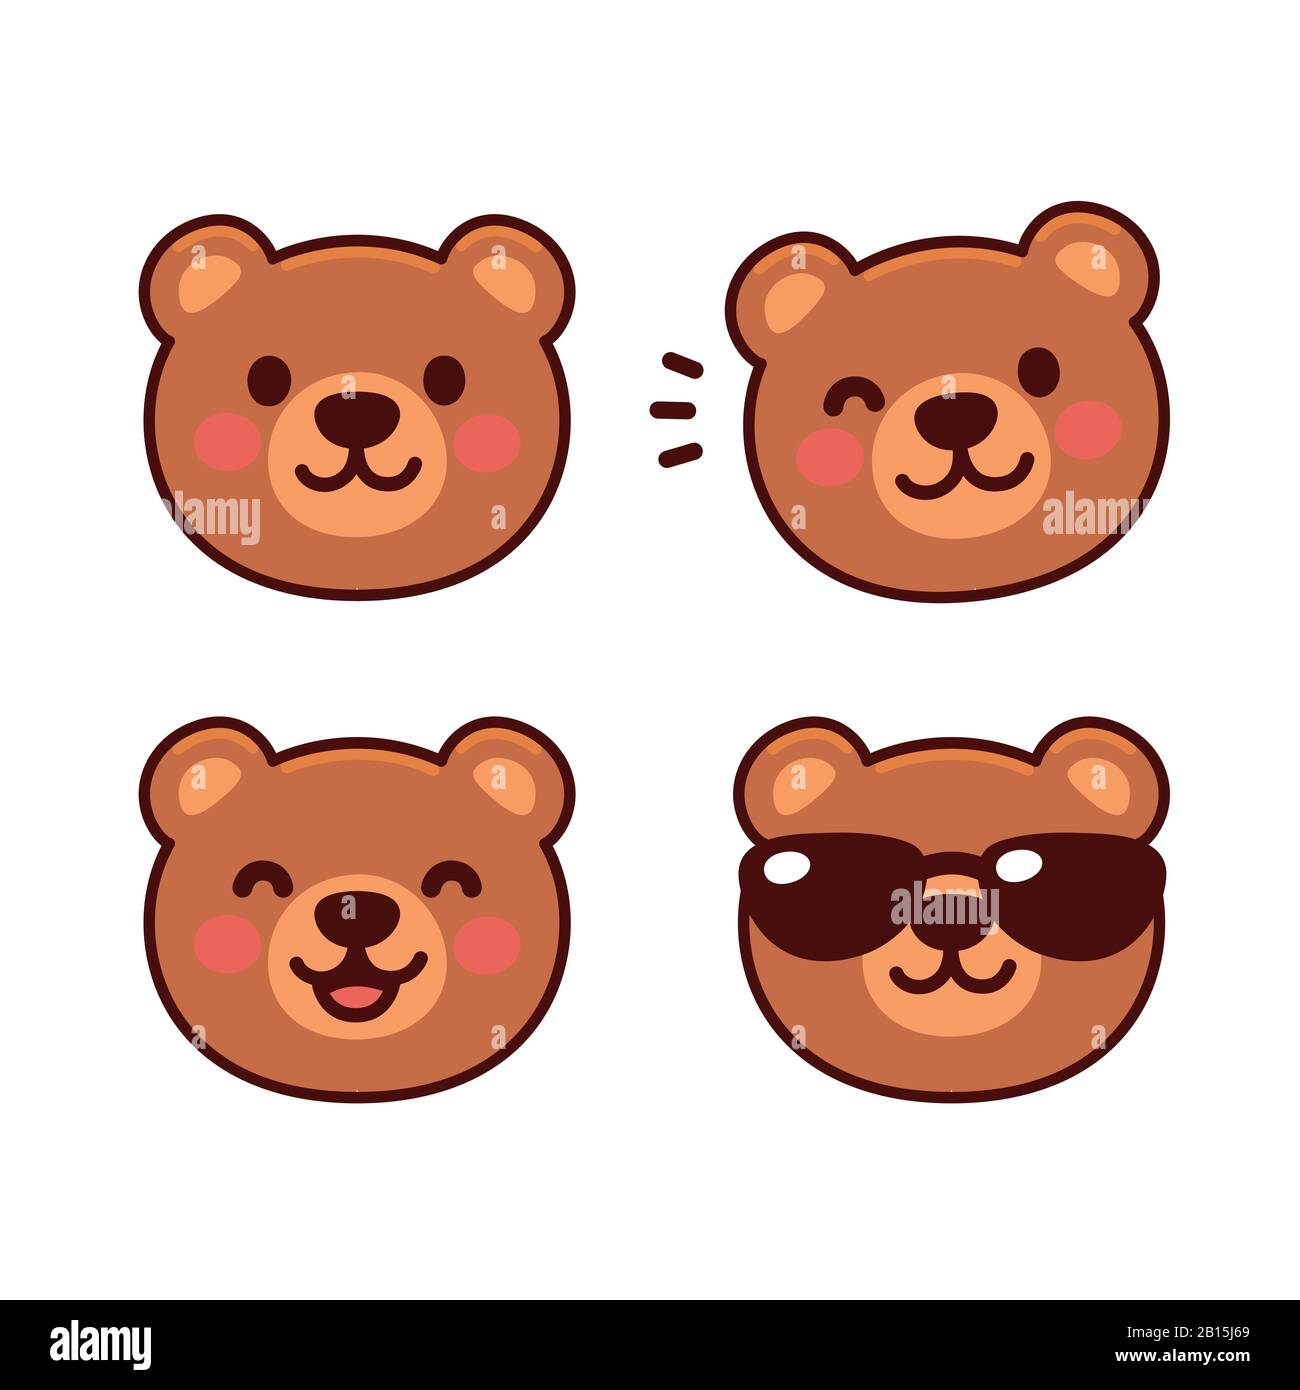 Cute Brown Square Bear - Square Animals - Free Transparent PNG Clipart  Images Download